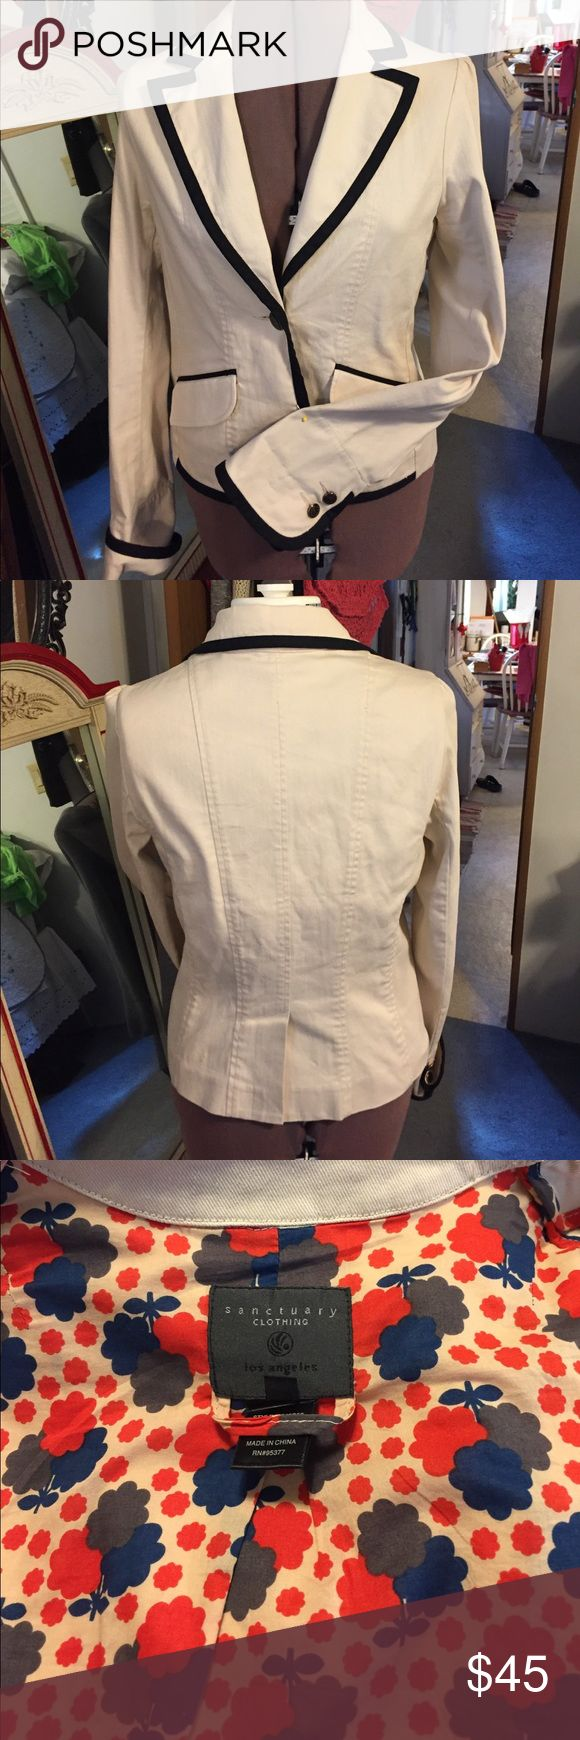 💕Beautiful off white jacket💕 Beautiful off white jacket with black trim.Beautifully made,well tailored. Has 2 real pockets. The cuffs are very unique, you can turn them up or down.Beautiful fabric on the inside.Not a heavy jacket,just right for cool nights.💕 sanctuary clothing Jackets & Coats Blazers